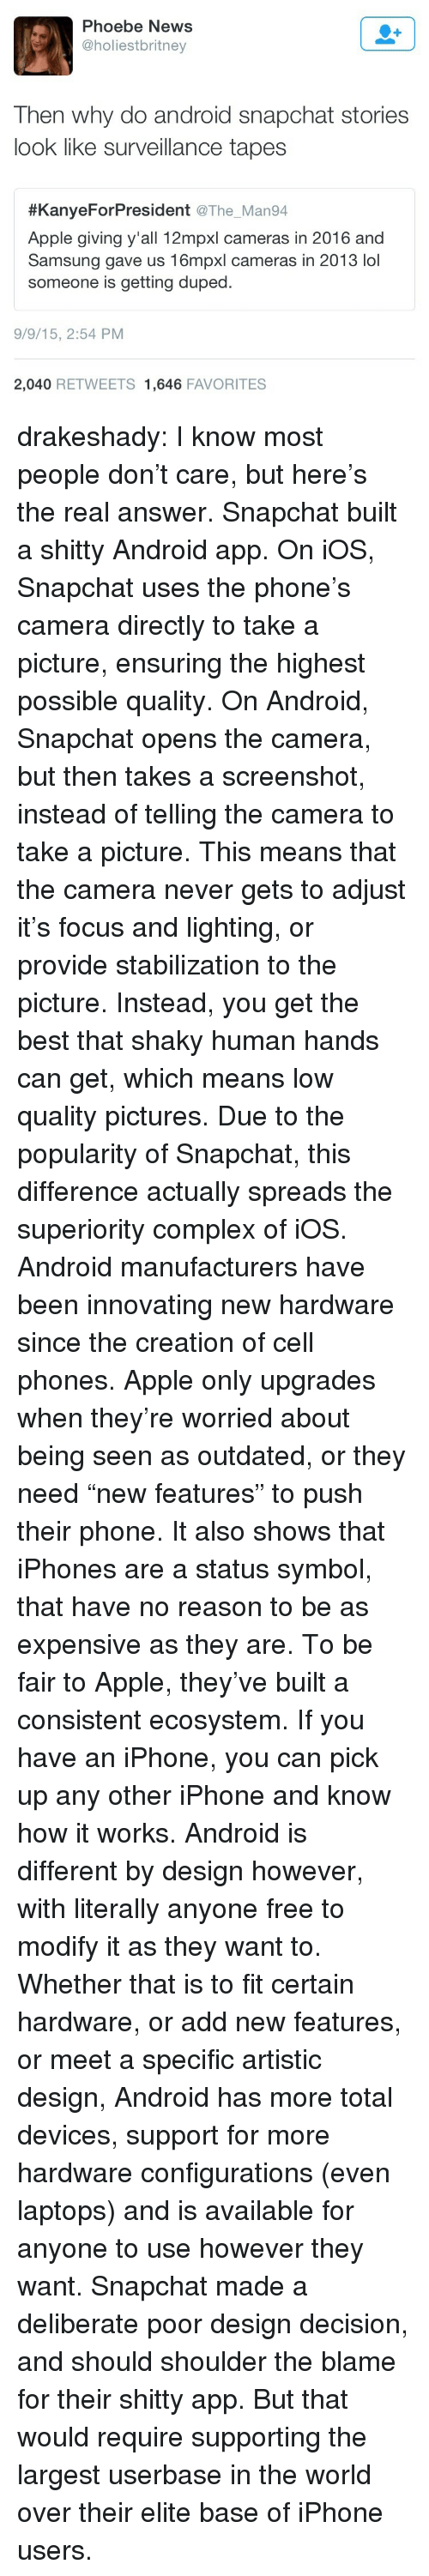 """Android, Apple, and Complex: Phoebe News  @holiestbritney  Then why do android snapchat stories  look like surveillance tapes  #KanyeForPresident @The. Man94  Apple giving y'all 12mpxl cameras in 2016 and  Samsung gave us 16mpxl cameras in 2013 lol  someone is getting duped  9/9/15, 2:54 PM  2,040 RETWEETS 1,646 FAVORITES drakeshady: I know most people don't care, but here's the real answer. Snapchat built a shitty Android app. On iOS, Snapchat uses the phone's camera directly to take a picture, ensuring the highest possible quality. On Android, Snapchat opens the camera, but then takes a screenshot, instead of telling the camera to take a picture. This means that the camera never gets to adjust it's focus and lighting, or provide stabilization to the picture. Instead, you get the best that shaky human hands can get, which means low quality pictures. Due to the popularity of Snapchat, this difference actually spreads the superiority complex of iOS. Android manufacturers have been innovating new hardware since the creation of cell phones. Apple only upgrades when they're worried about being seen as outdated, or they need """"new features"""" to push their phone. It also shows that iPhones are a status symbol, that have no reason to be as expensive as they are. To be fair to Apple, they've built a consistent ecosystem. If you have an iPhone, you can pick up any other iPhone and know how it works. Android is different by design however, with literally anyone free to modify it as they want to. Whether that is to fit certain hardware, or add new features, or meet a specific artistic design, Android has more total devices, support for more hardware configurations (even laptops) and is available for anyone to use however they want. Snapchat made a deliberate poor design decision, and should shoulder the blame for their shitty app. But that would require supporting the largest userbase in the world over their elite base of iPhone users."""